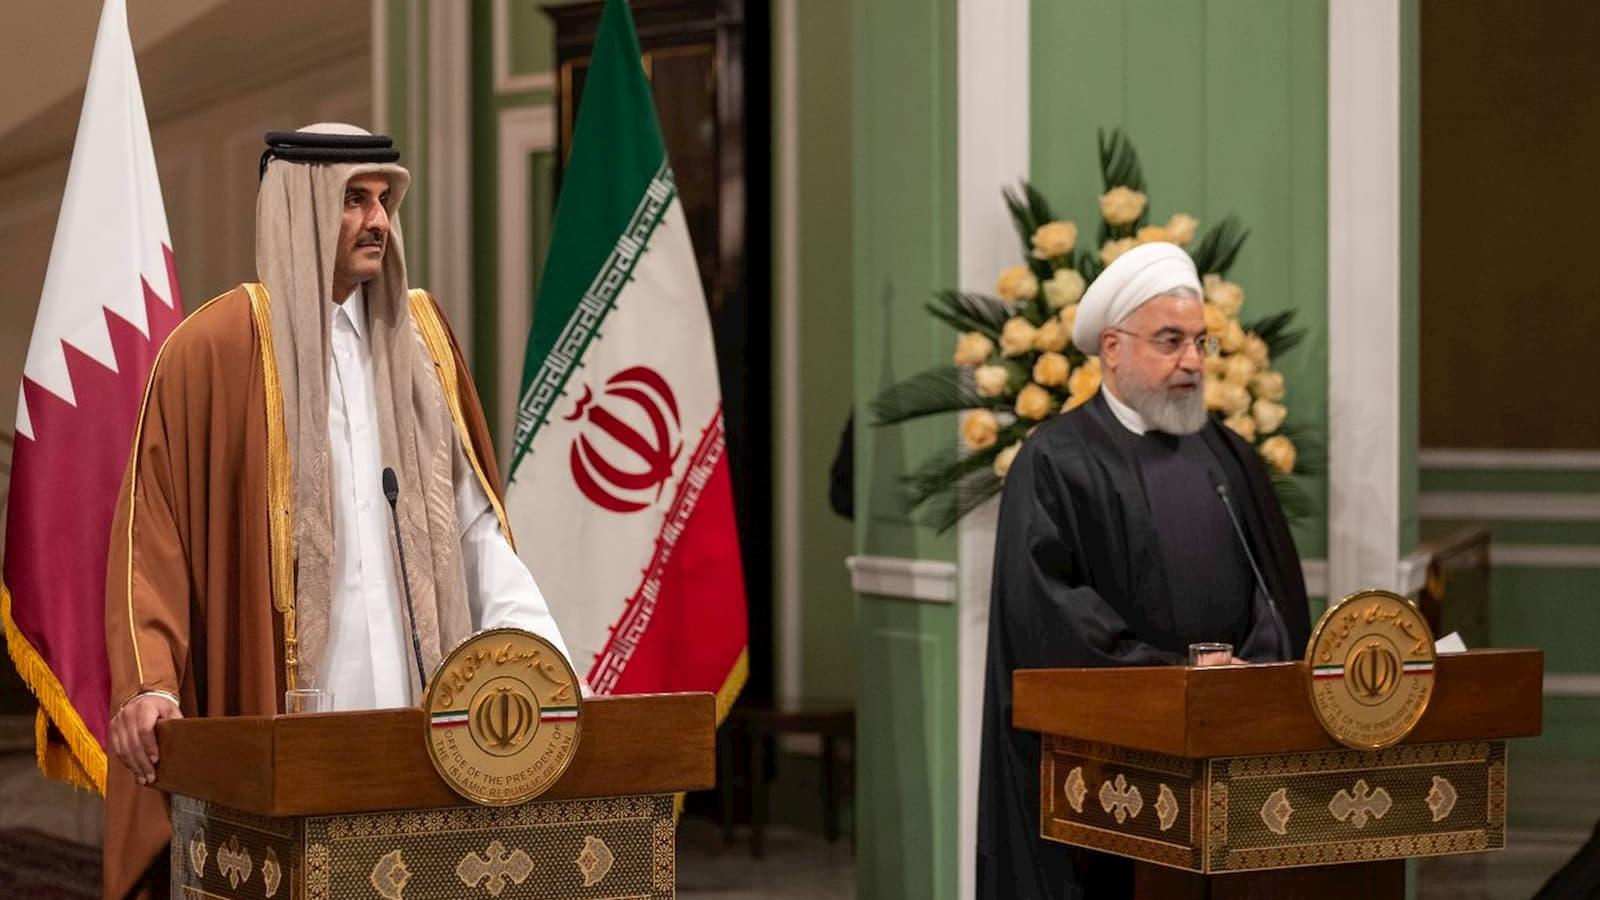 Dialogue is the only solution to regional crises: HH the Amir